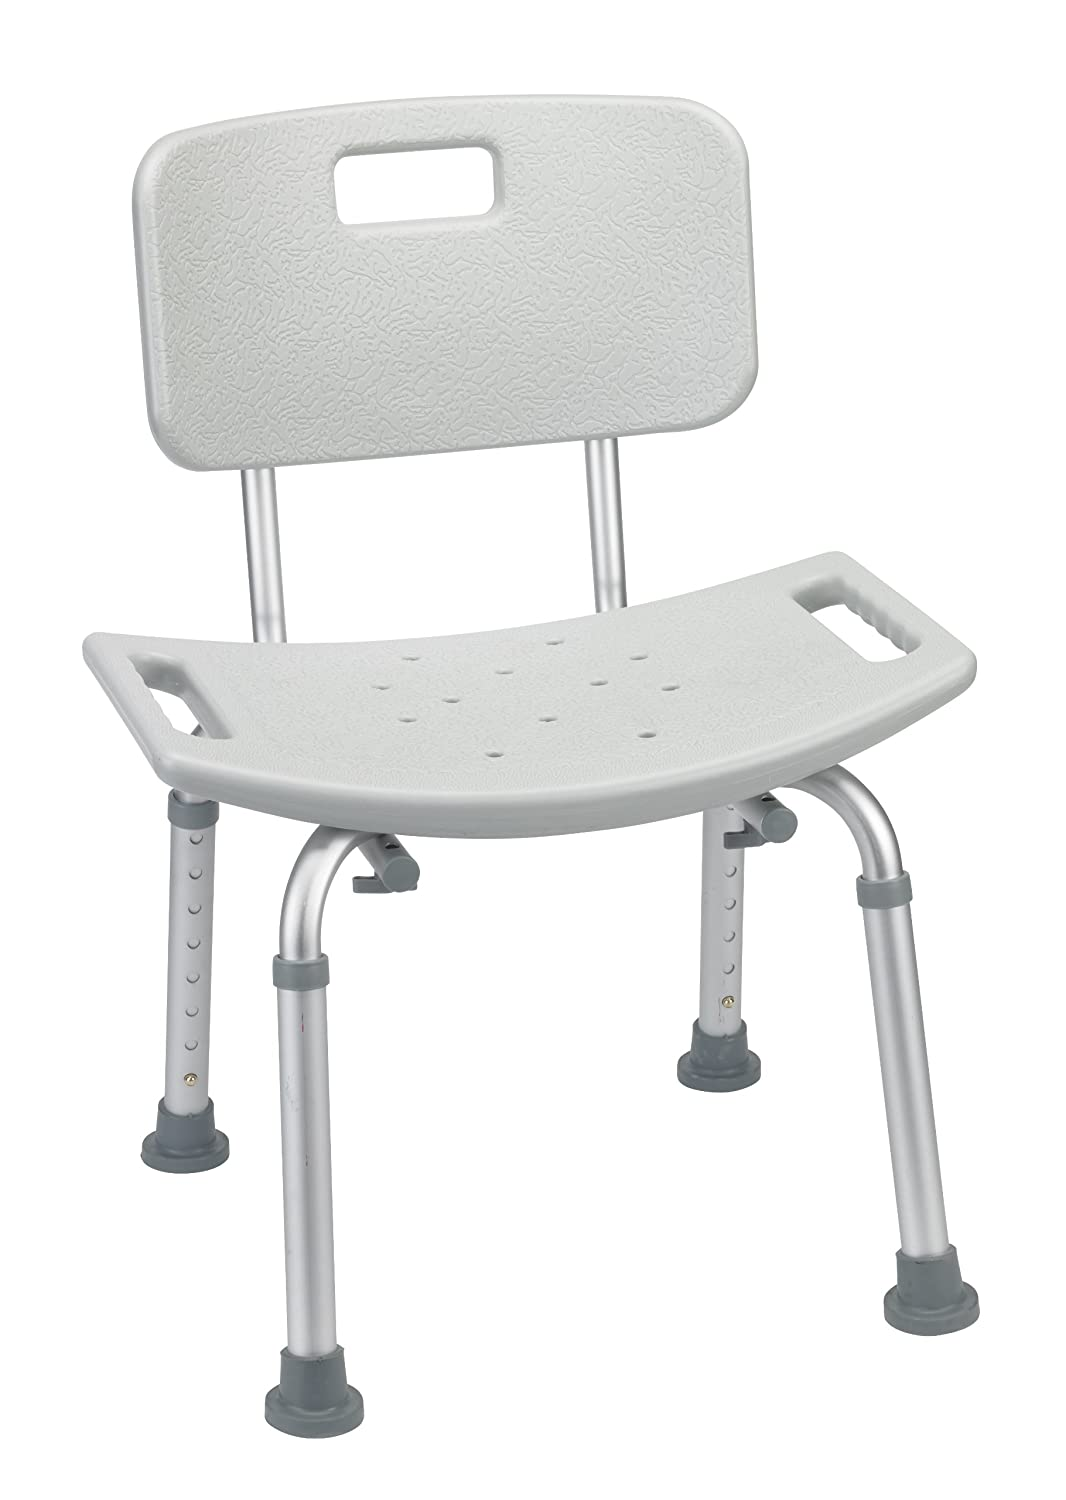 Amazon.com Bathroom Safety Shower Tub Bench Chair with Back Grey Health u0026 Personal Care  sc 1 st  Amazon.com & Amazon.com: Bathroom Safety Shower Tub Bench Chair with Back Grey ...